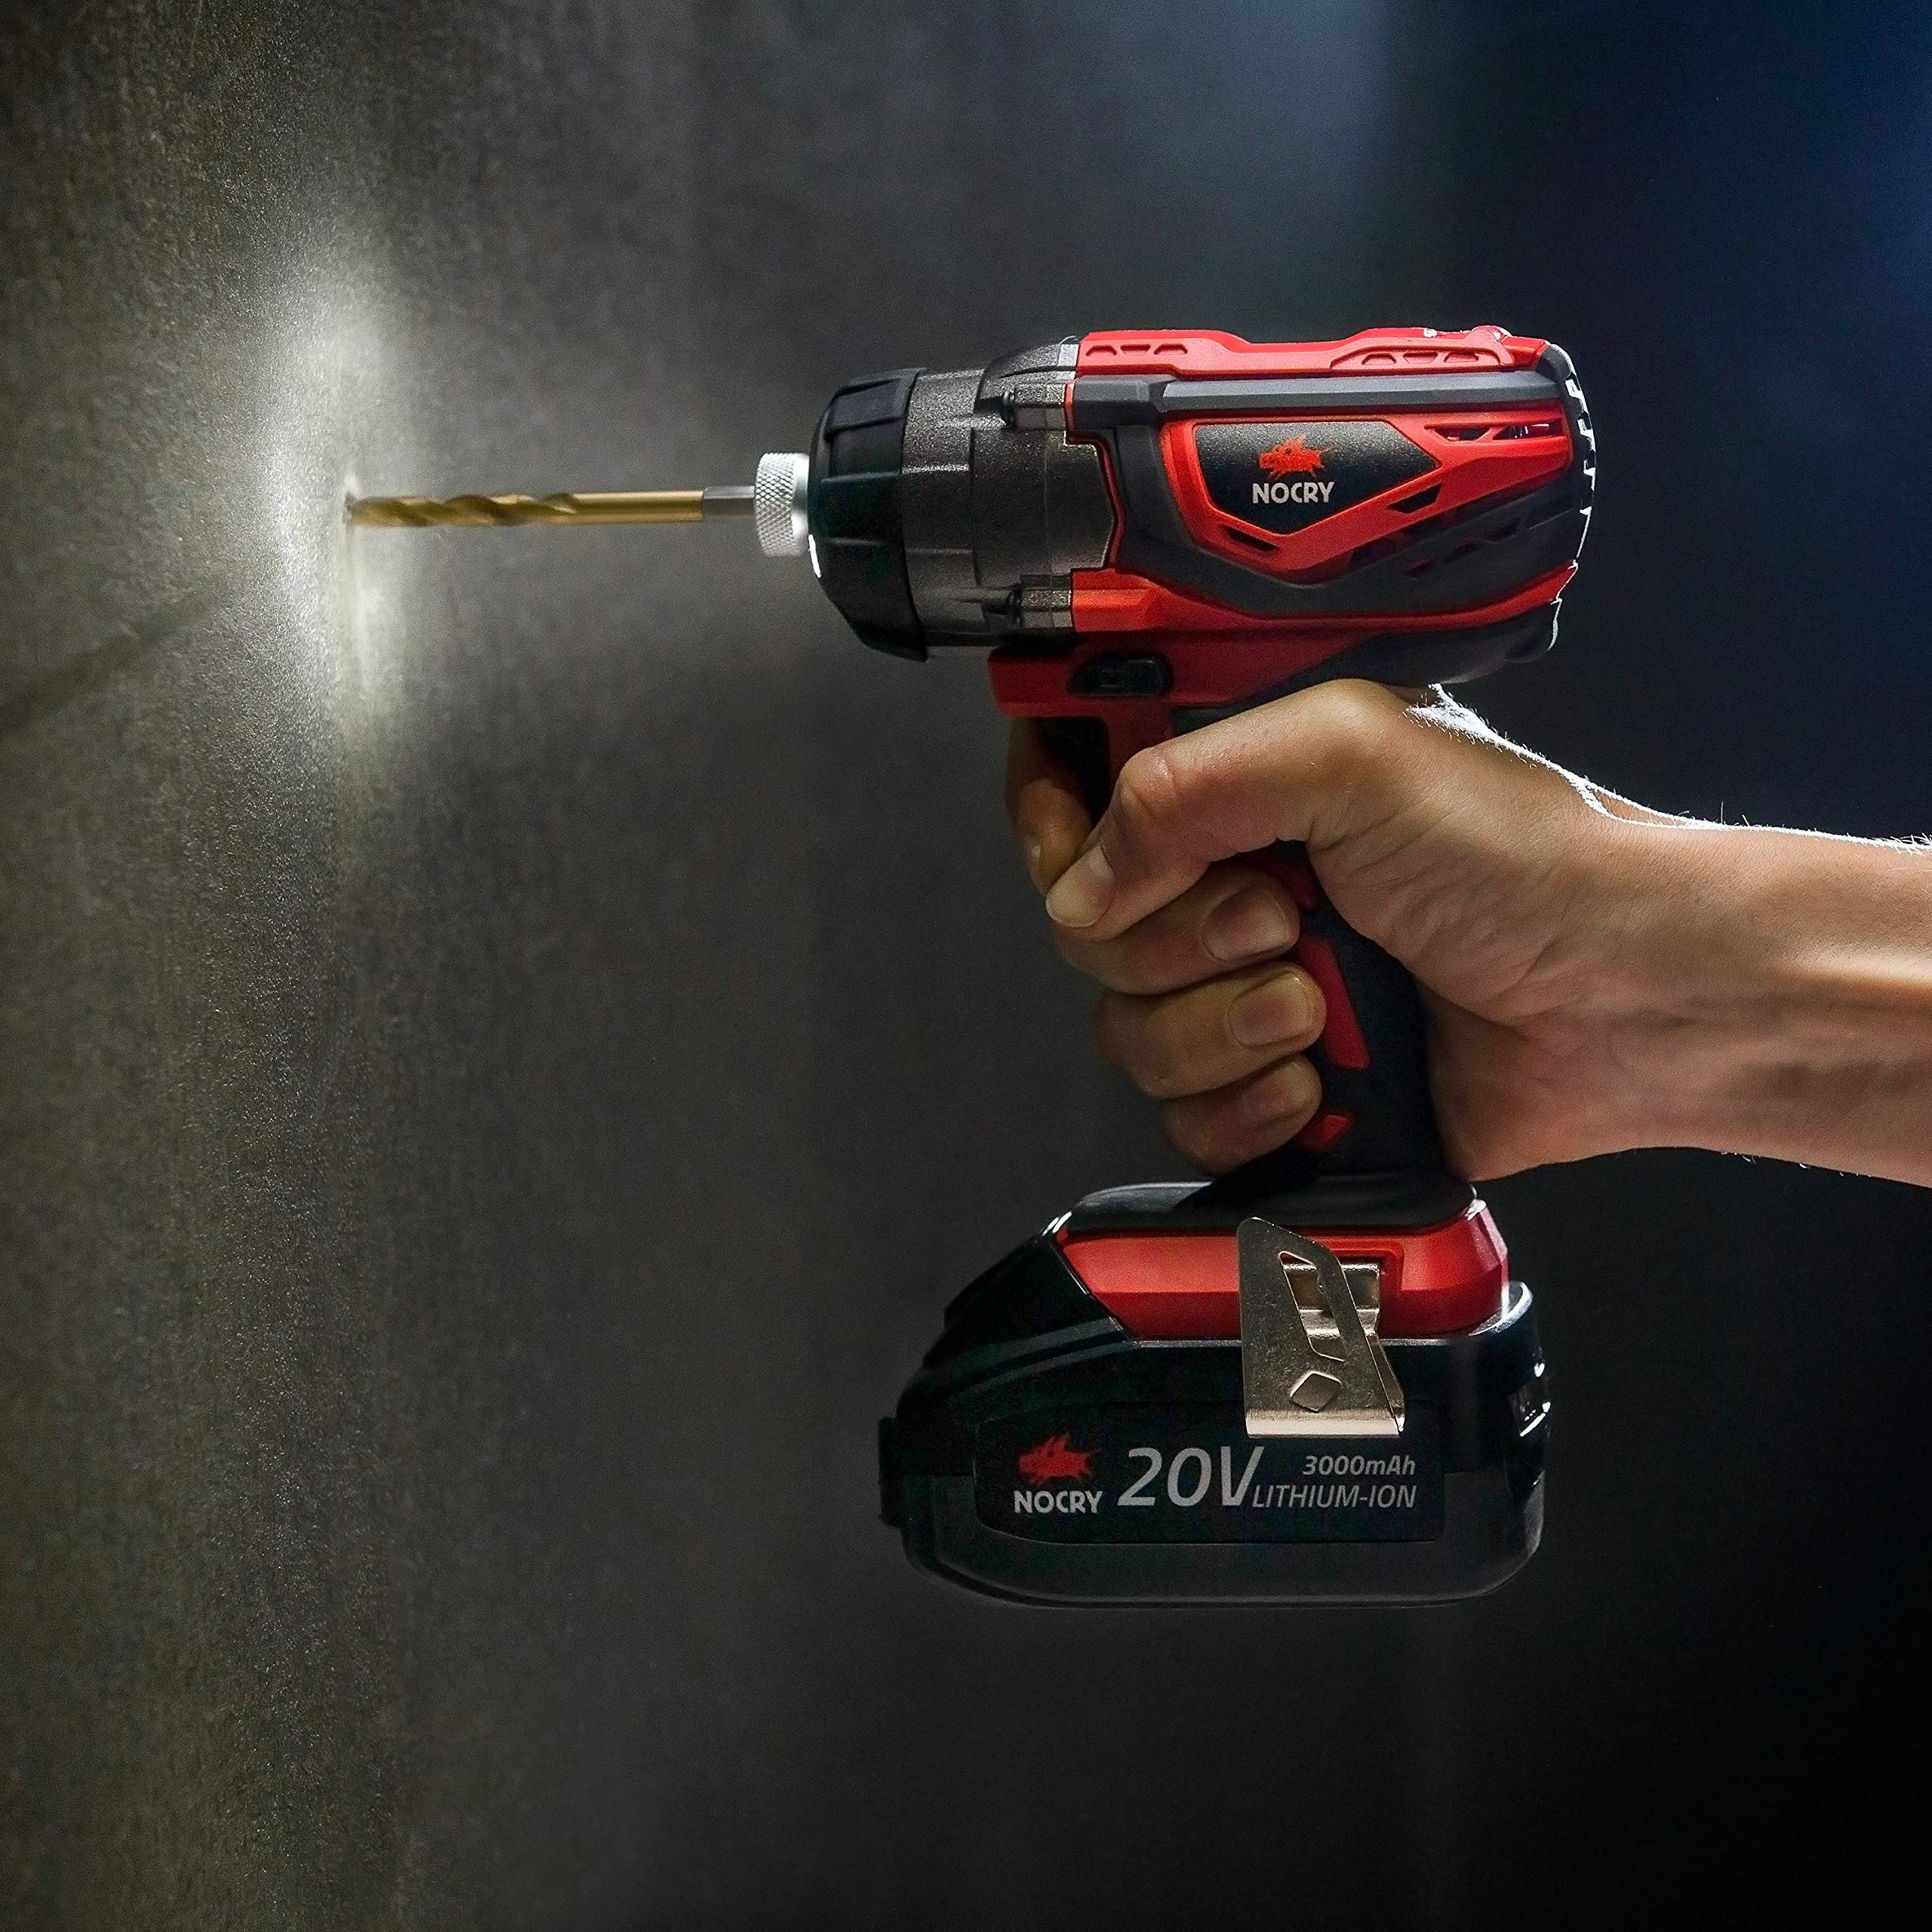 NoCry 20V Cordless Impact Driver Kit - 120 ft-lb (160 N.m) Torque, 3000 Max RPM/IPM, 1/4 inch Hex Chuck, LED Work Light, Belt Clip; 3.0 Ah Battery, Fast Charger & Carrying Case Included by NoCry (Image #3)